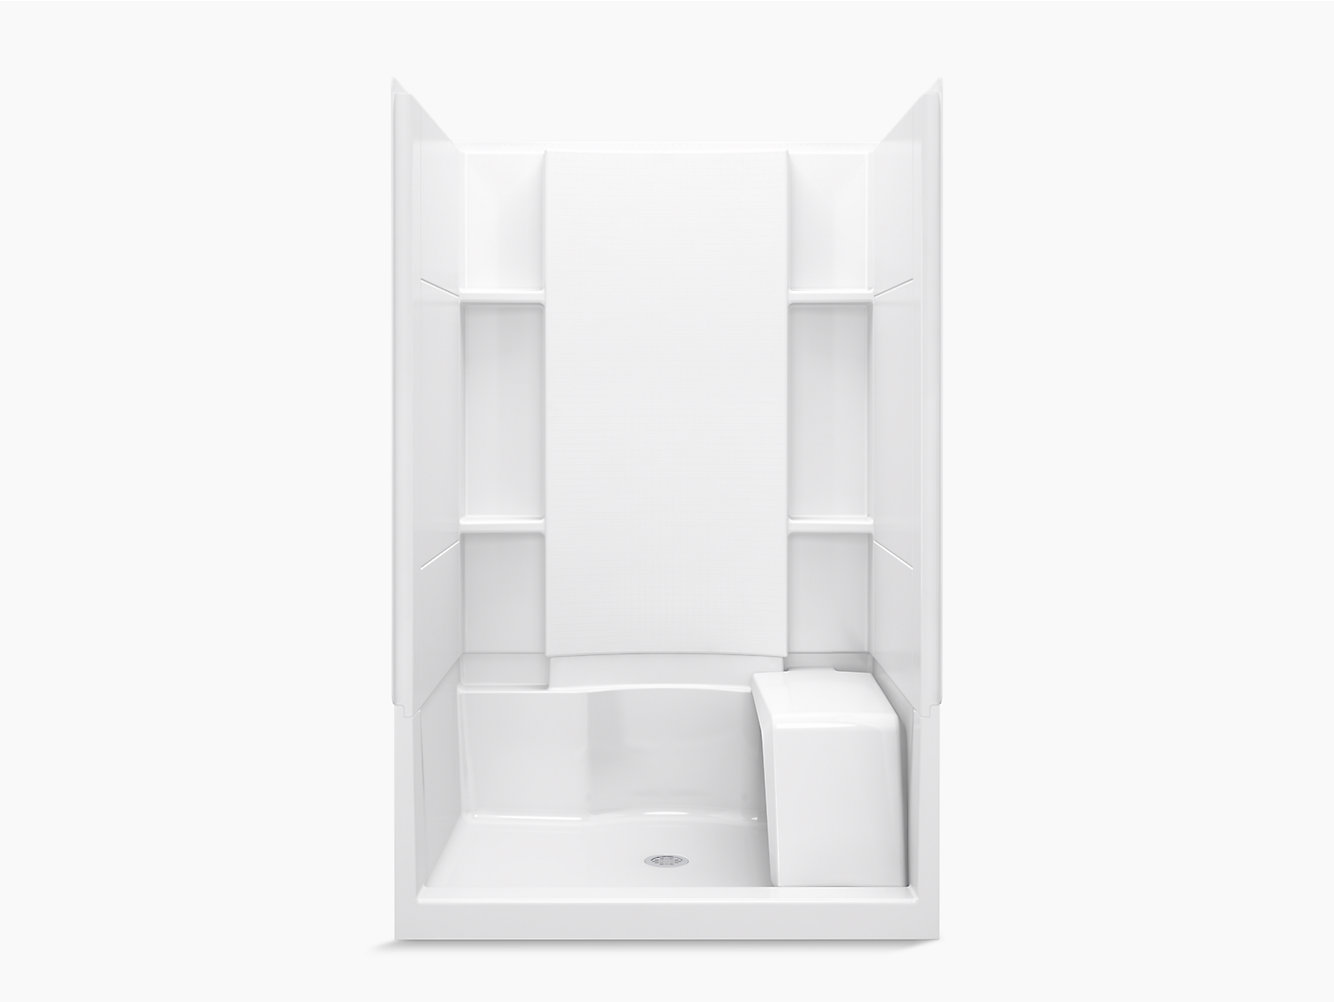 Accord 48 X 36 X 74 1 2 Seated Shower Stall With Aging In Place Backerboards 72280106 Sterling